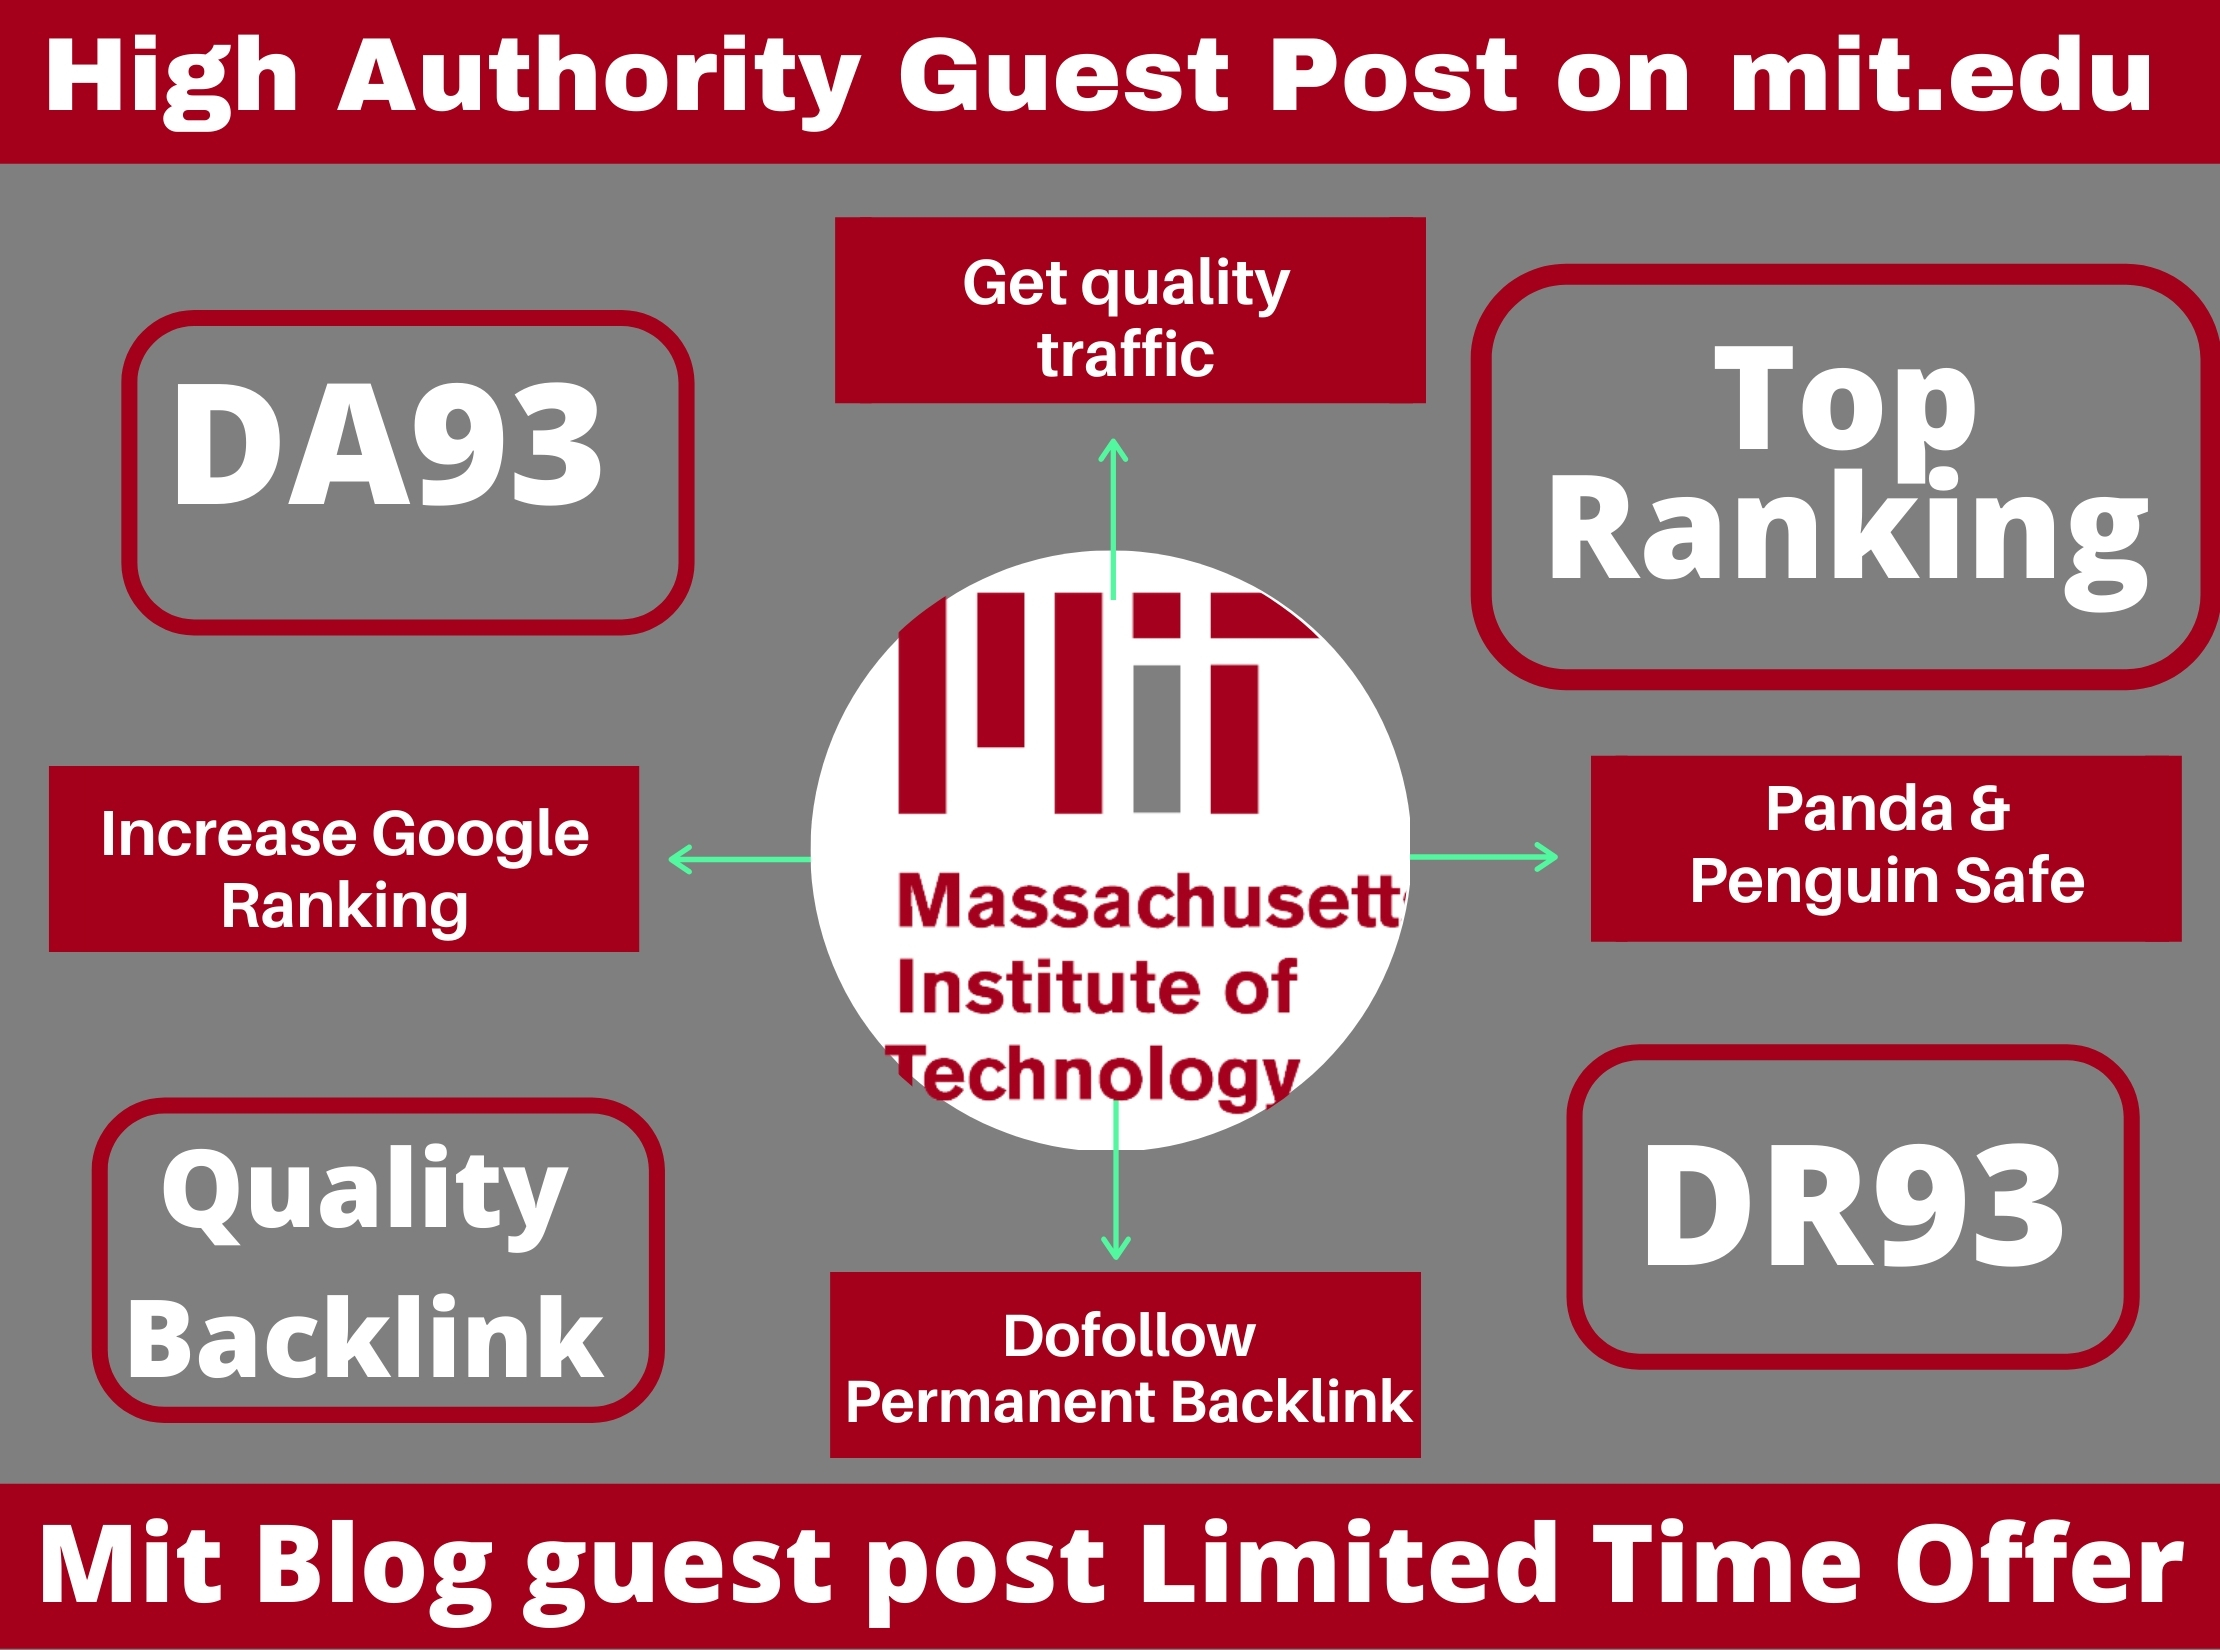 I will publish guest post on high authority website on mit. edu